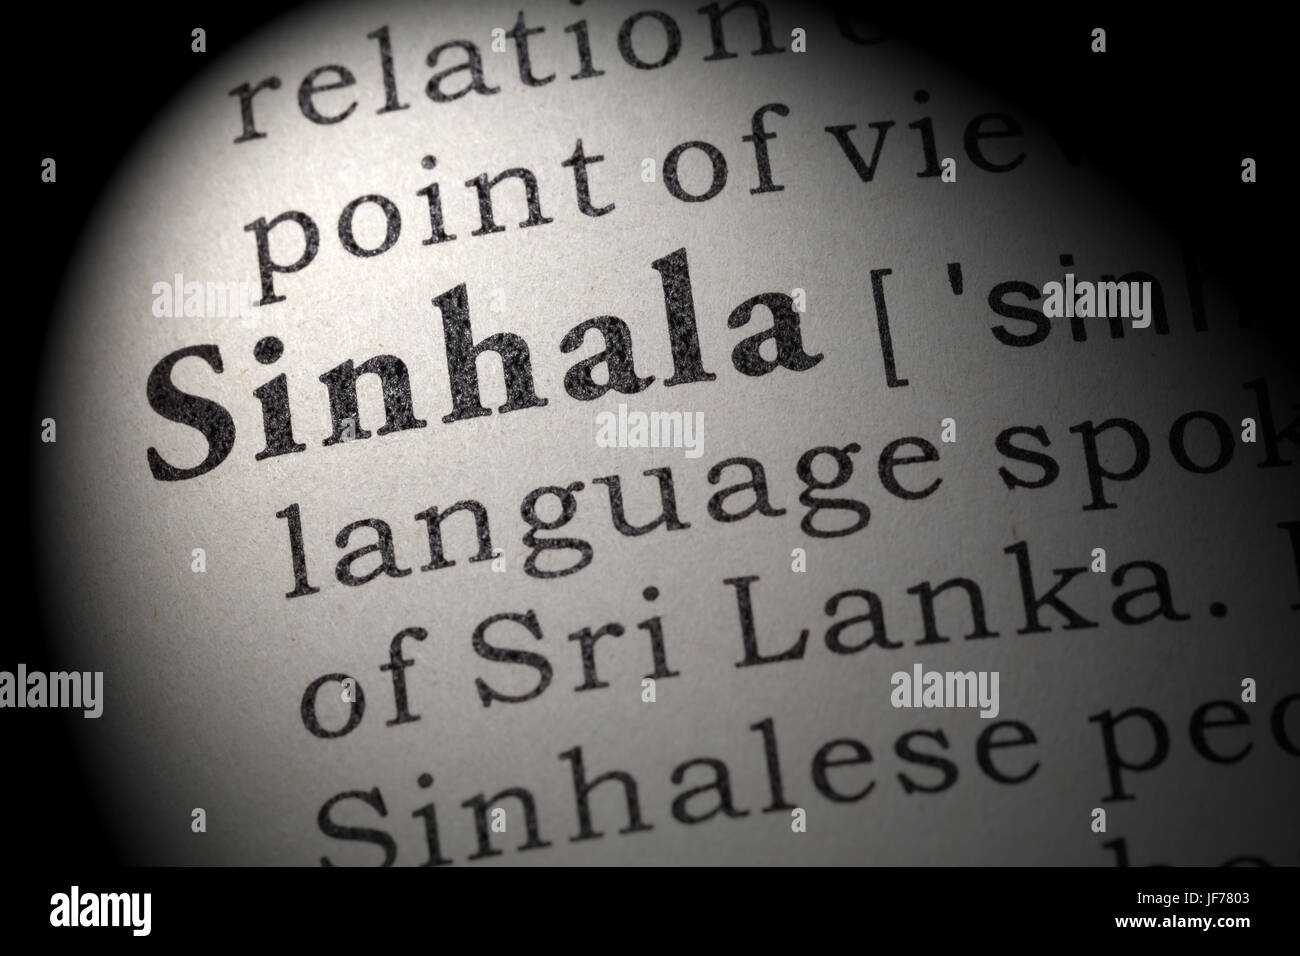 Fake Dictionary, Dictionary definition of the word Sinhala